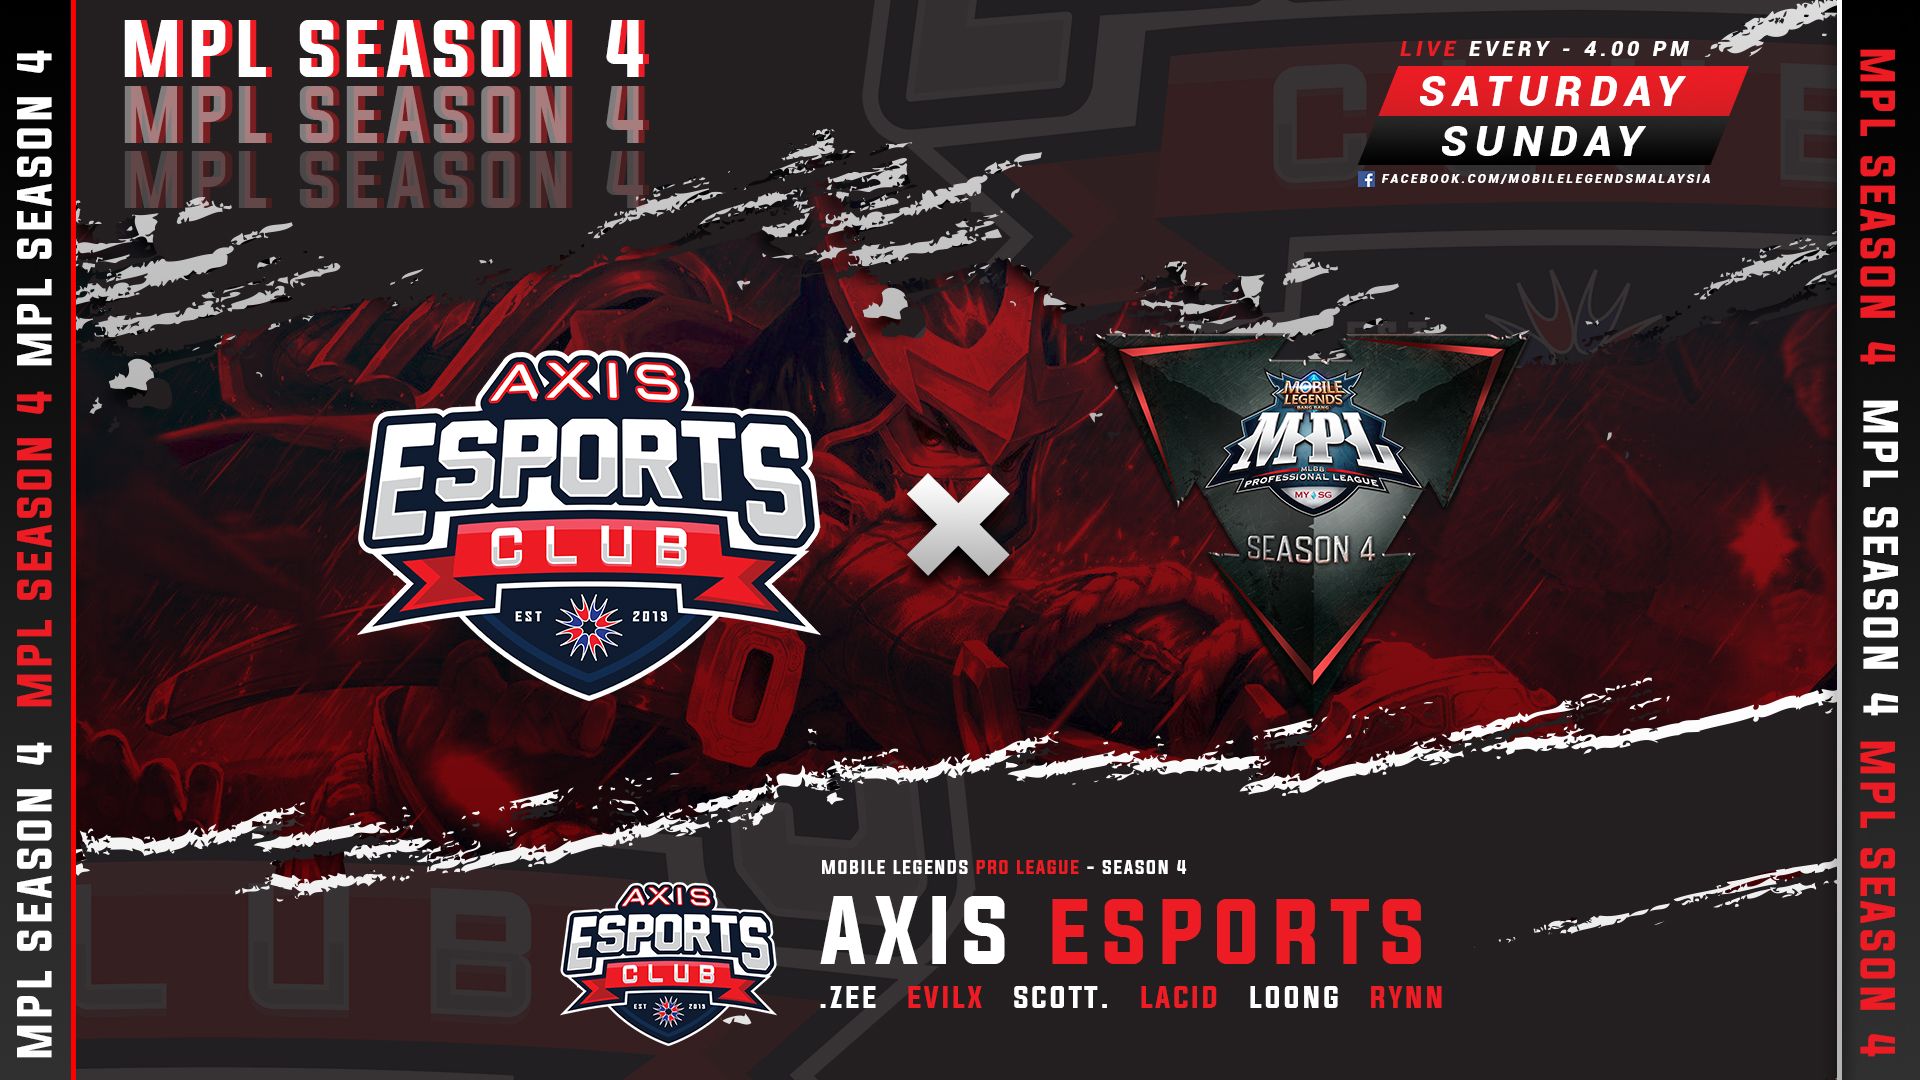 AXIS ESPORTS' MPL JOURNEY STARTS TOMORROW!!